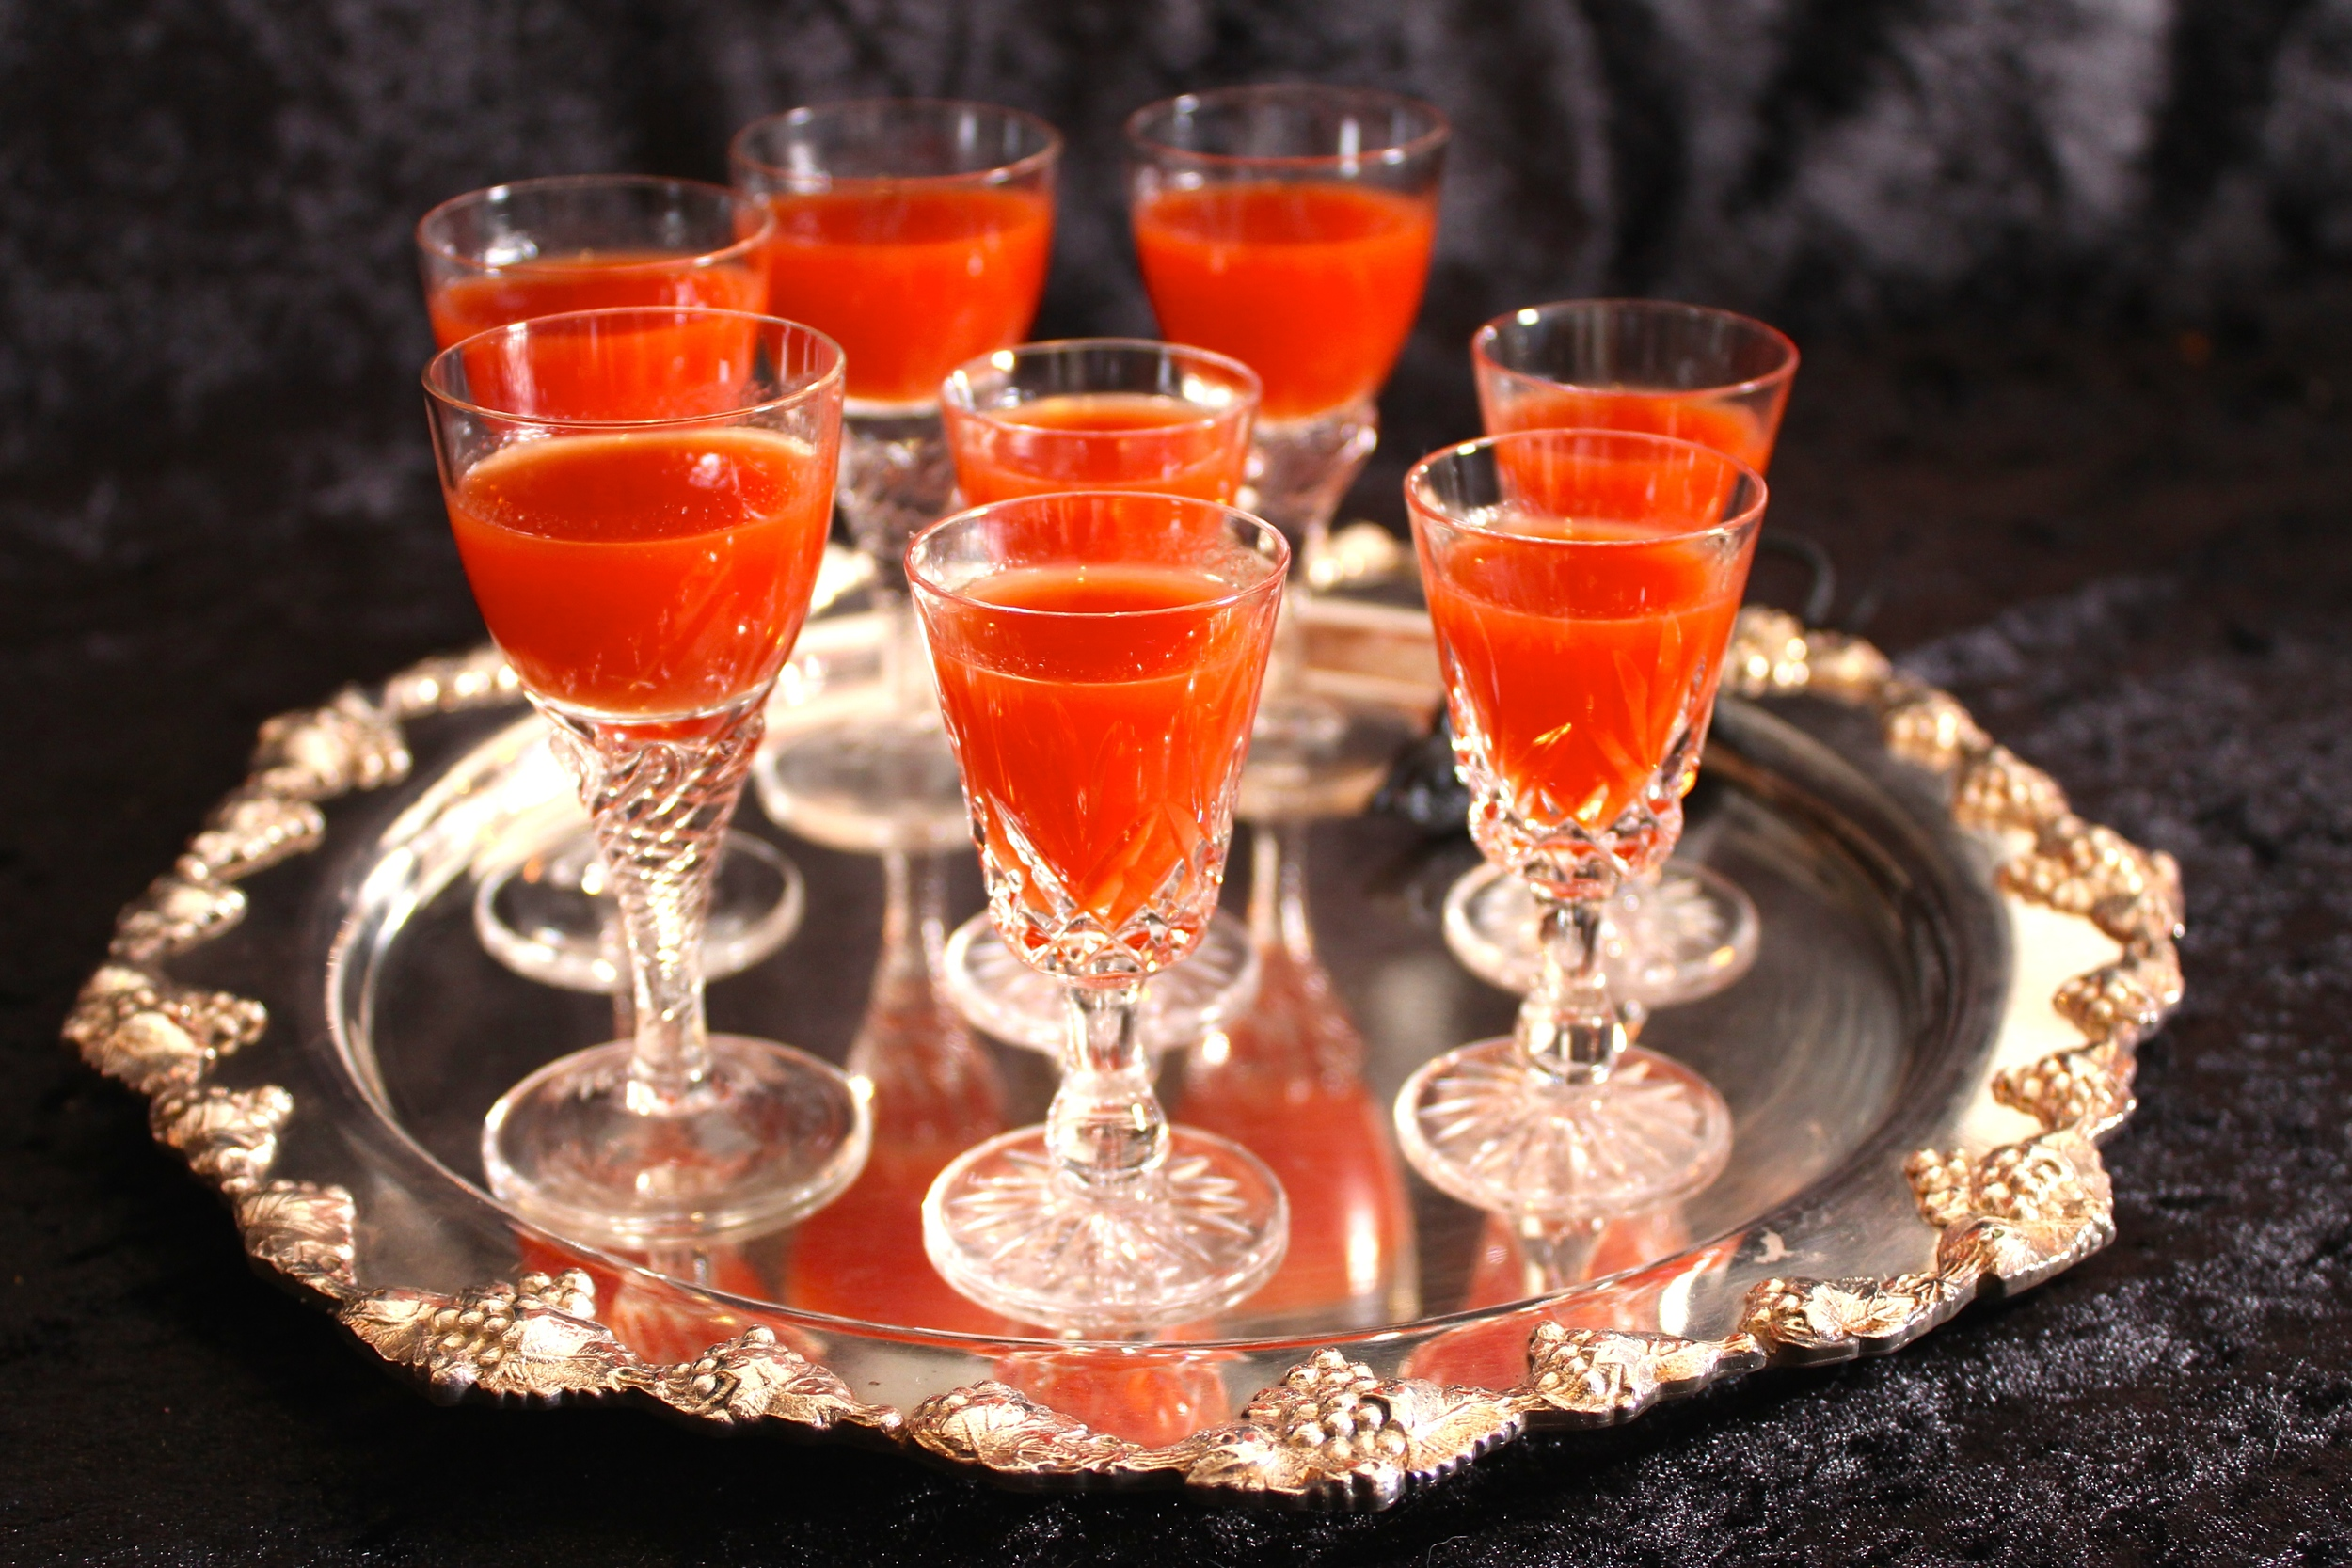 Gothic Dinner Party - Bloody Mary's